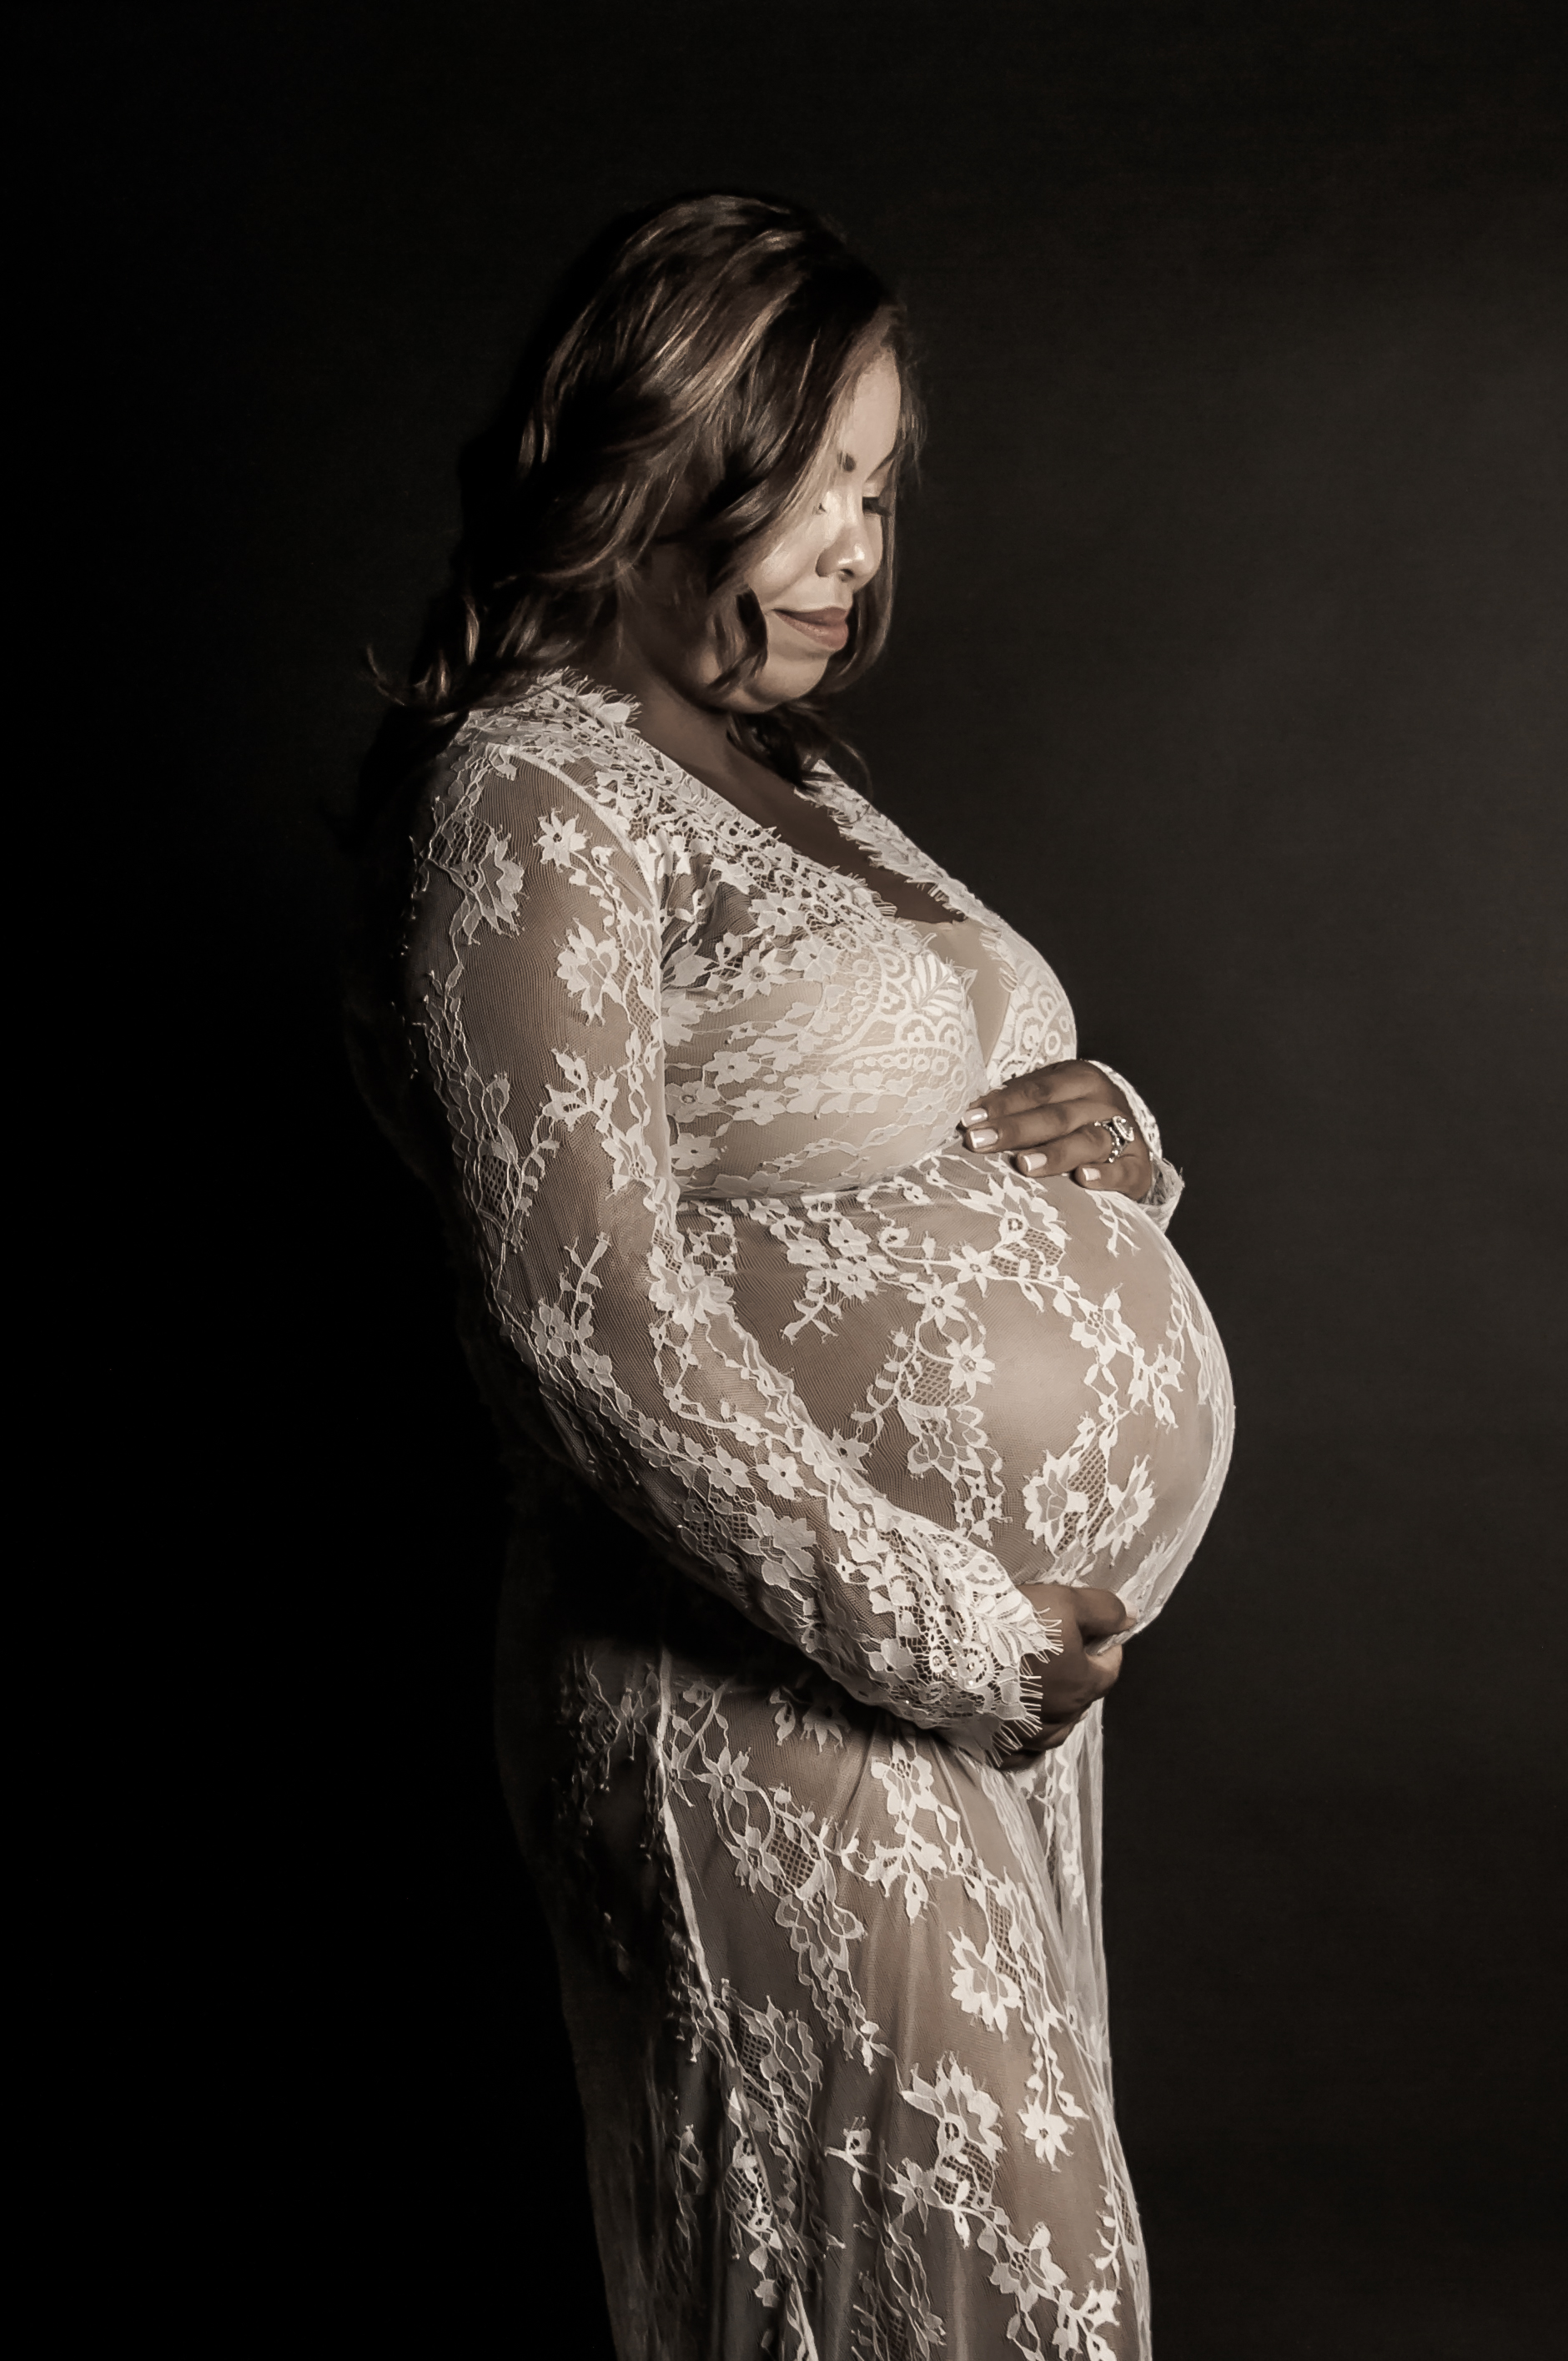 CarrieWestonStudios_Northport_Maternity_Wedding_Portraits_NY_Photography_Photographer-9717.jpg